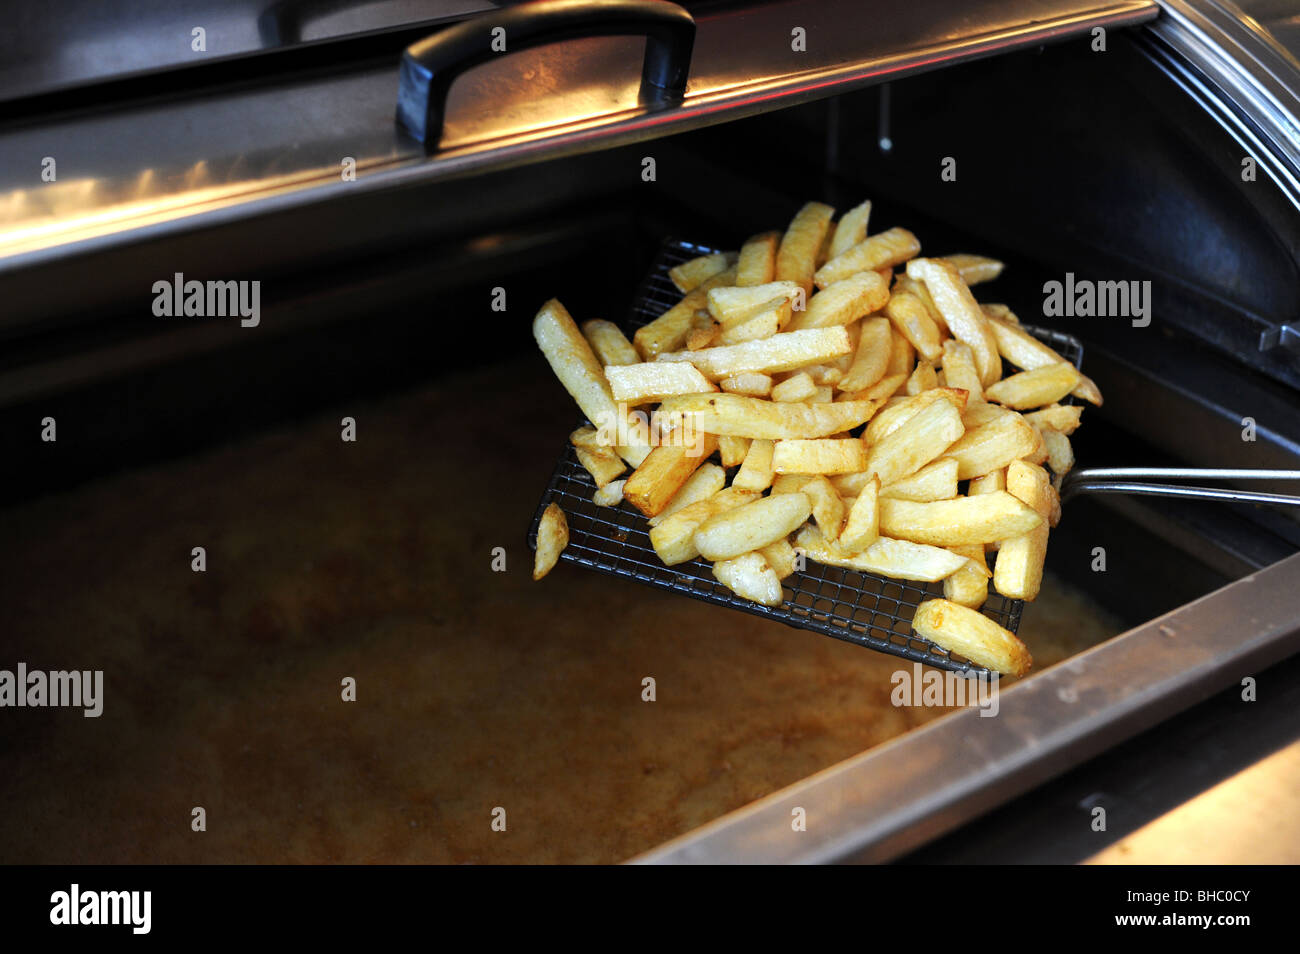 how to cook chips in a deep fryer